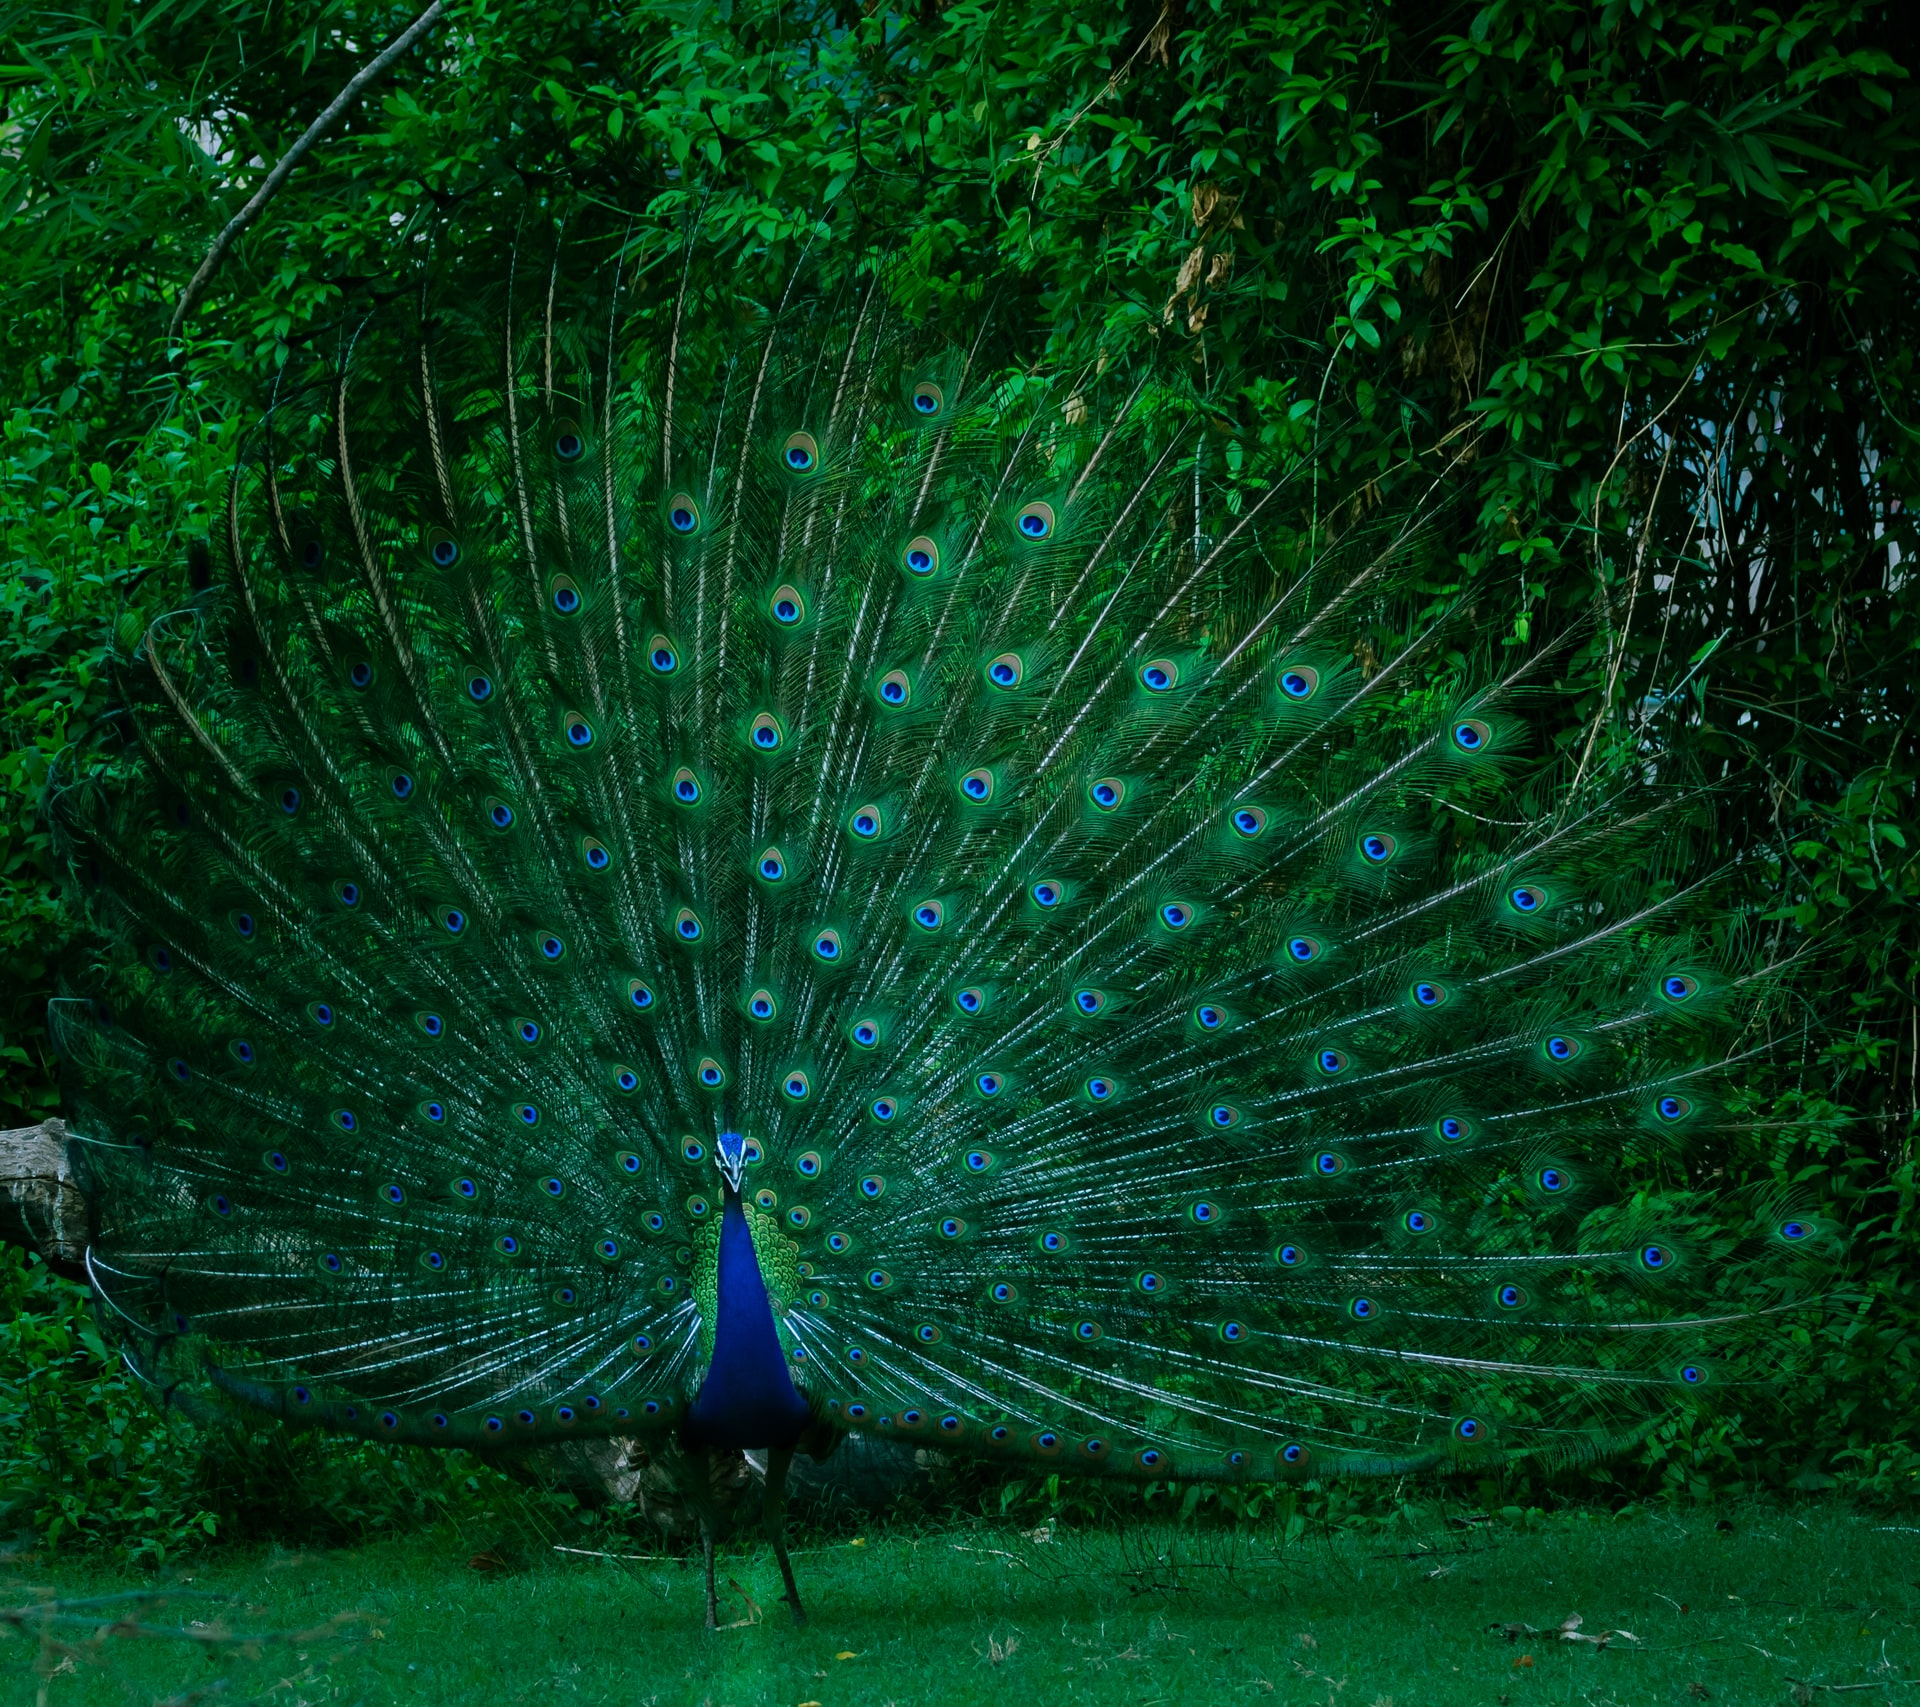 Learn About Peacock Mythology From the Greek Gods